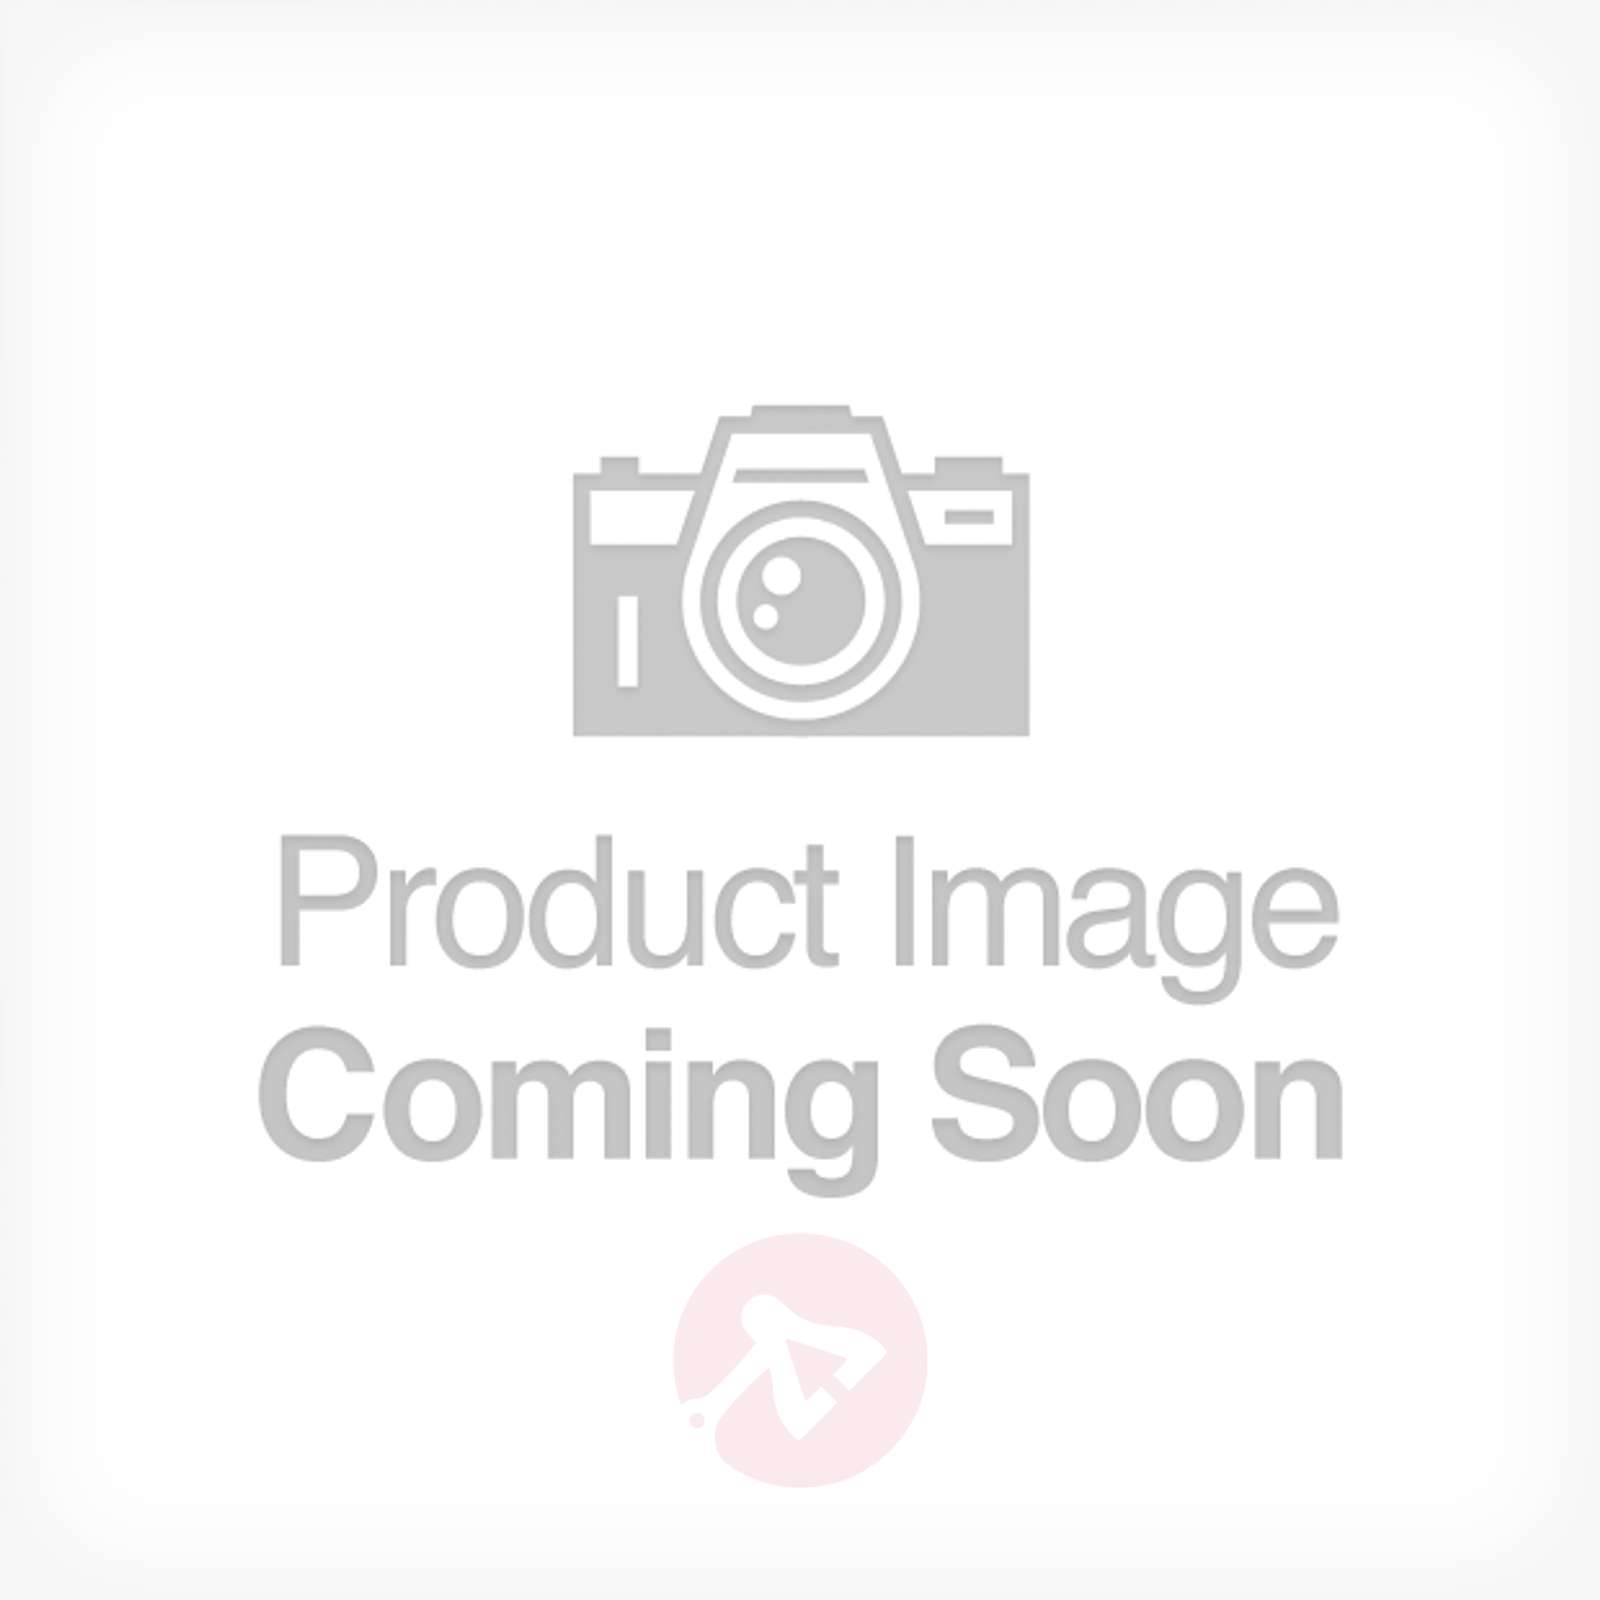 Solar-verlichting New Assisi Aton 450, wit-5522406-01